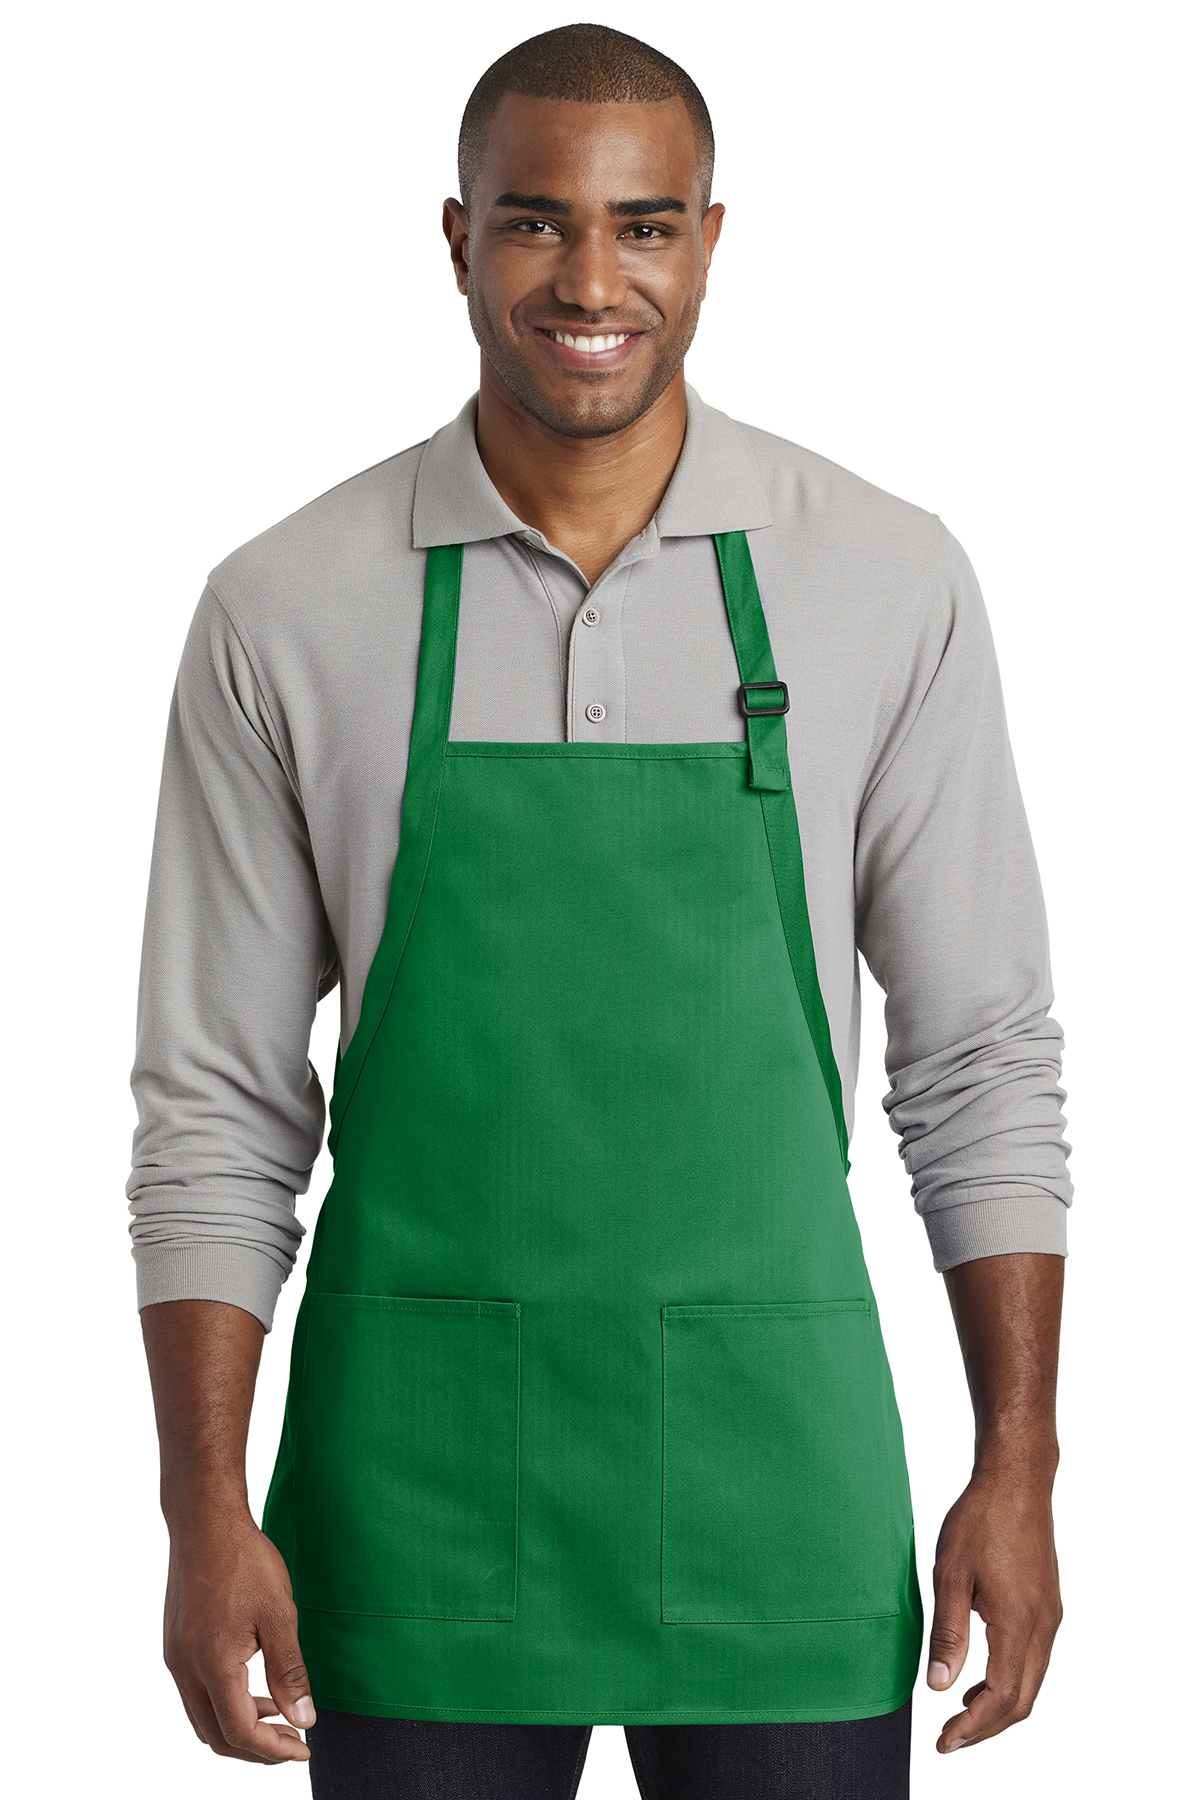 Port Authority A601 - Medium-Length Two-Pocket Bib Apron